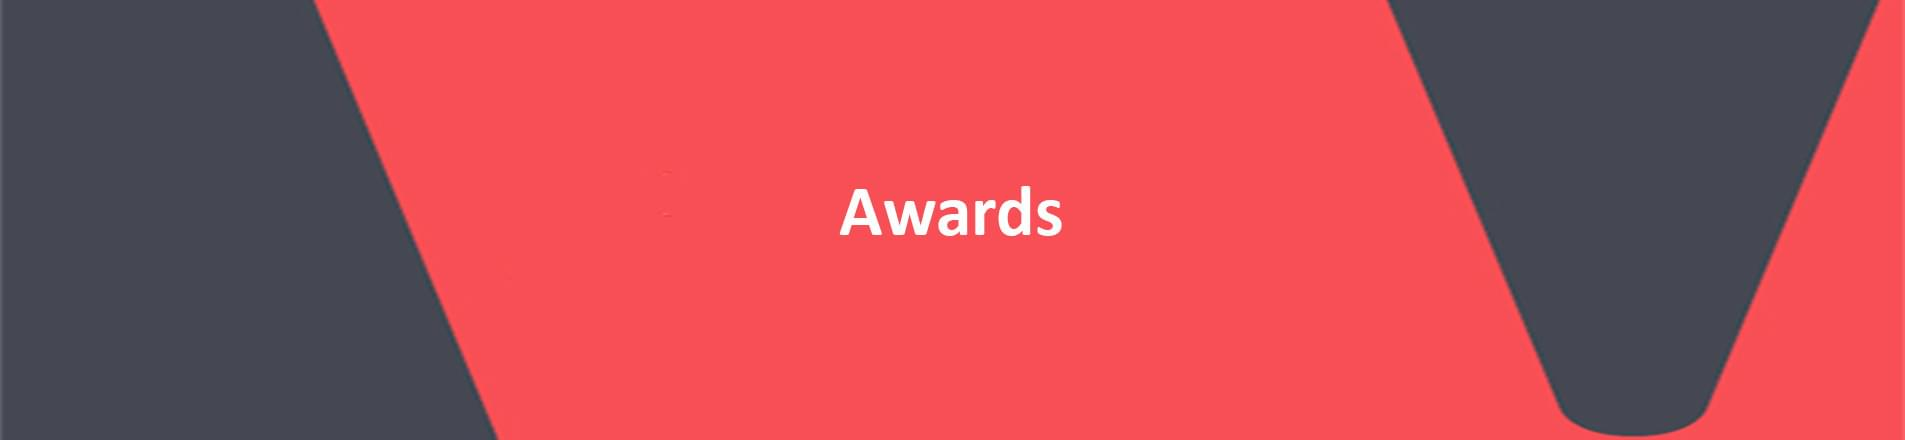 red banner with white text reading awards